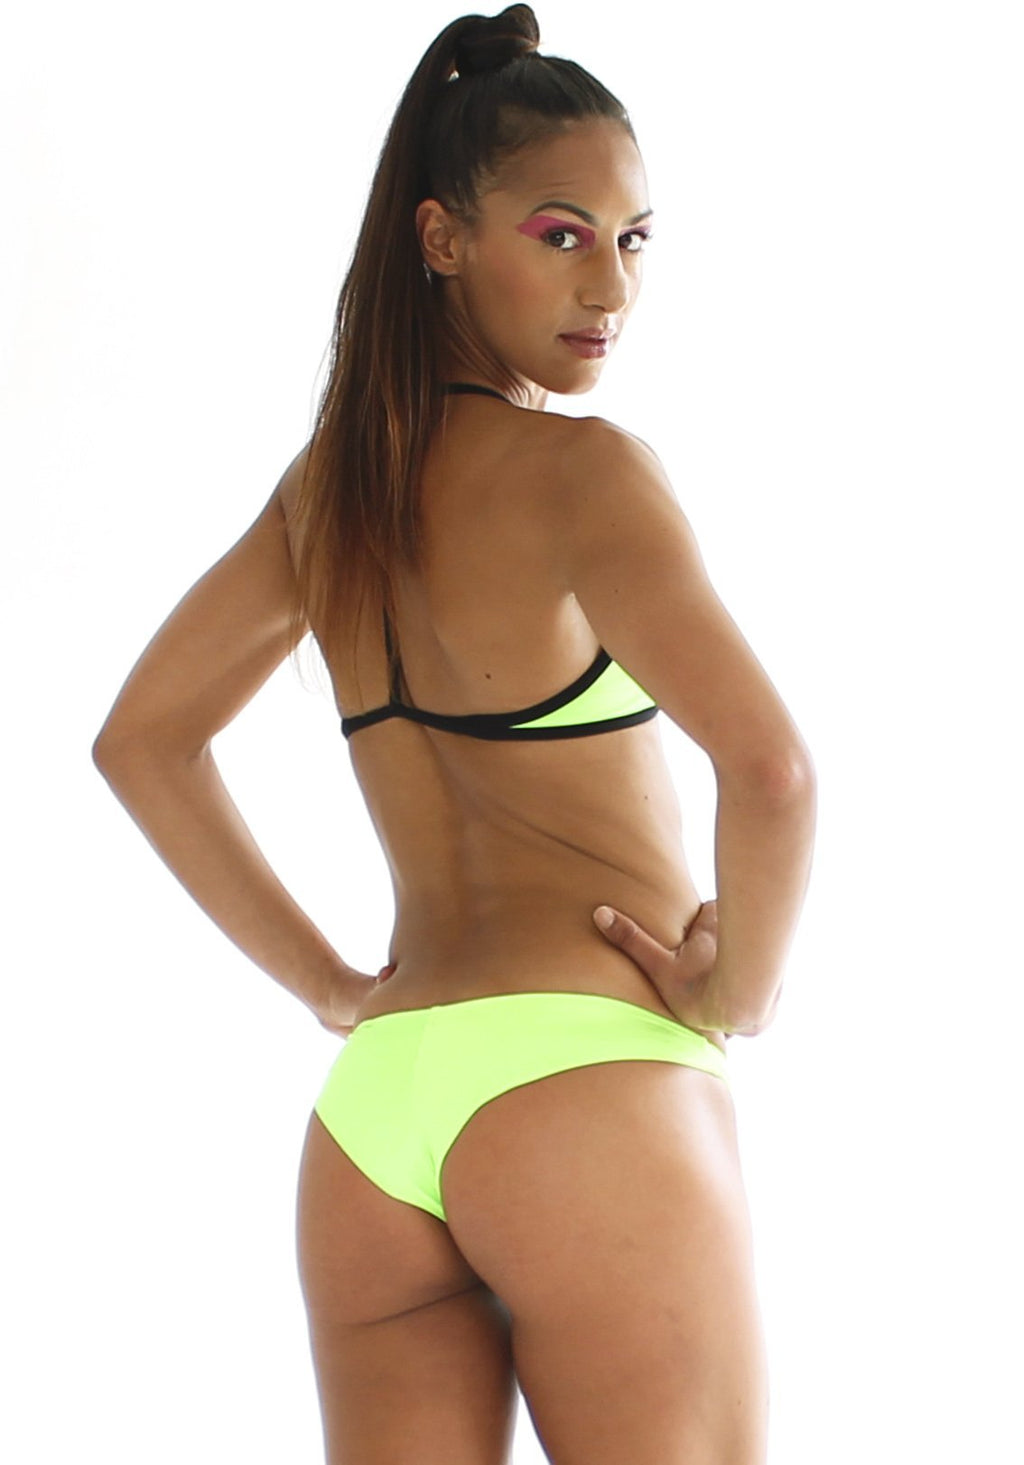 Green Fluor Bottom - wiinkbcn